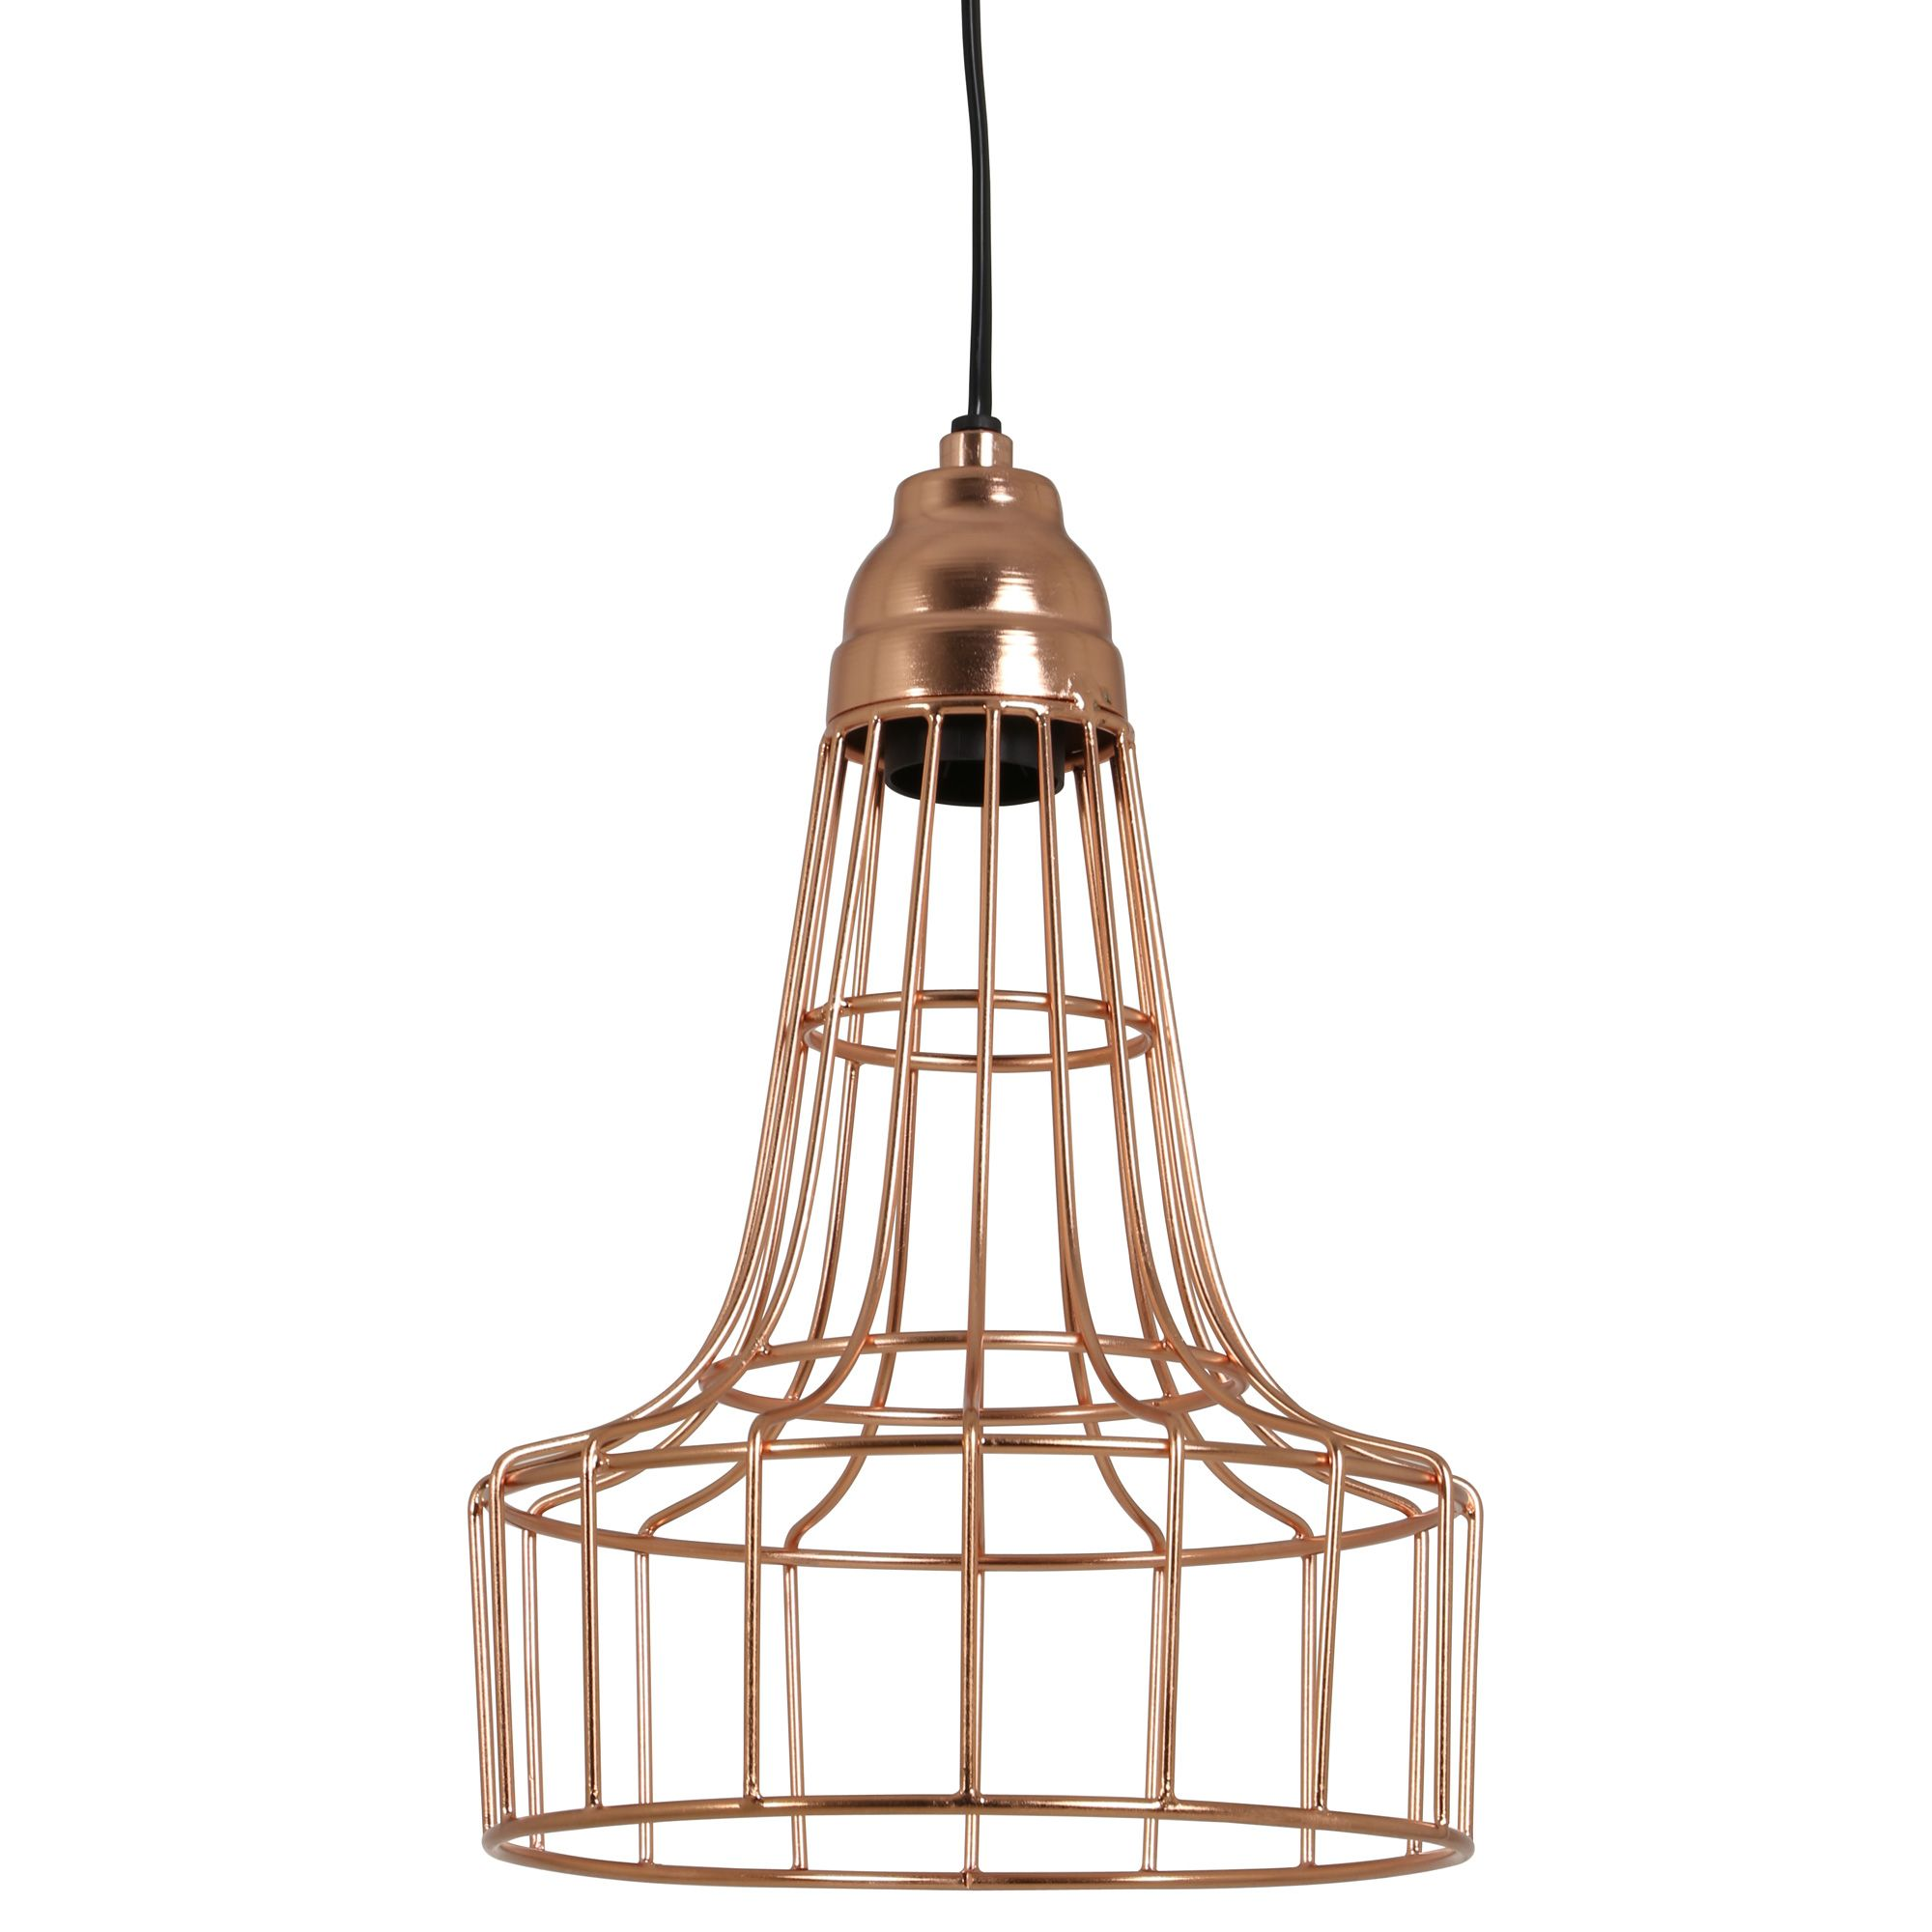 Babette Pendant By Light Living 3039055 Pendant Light Ceiling Pendant Lights Copper Pendant Lights